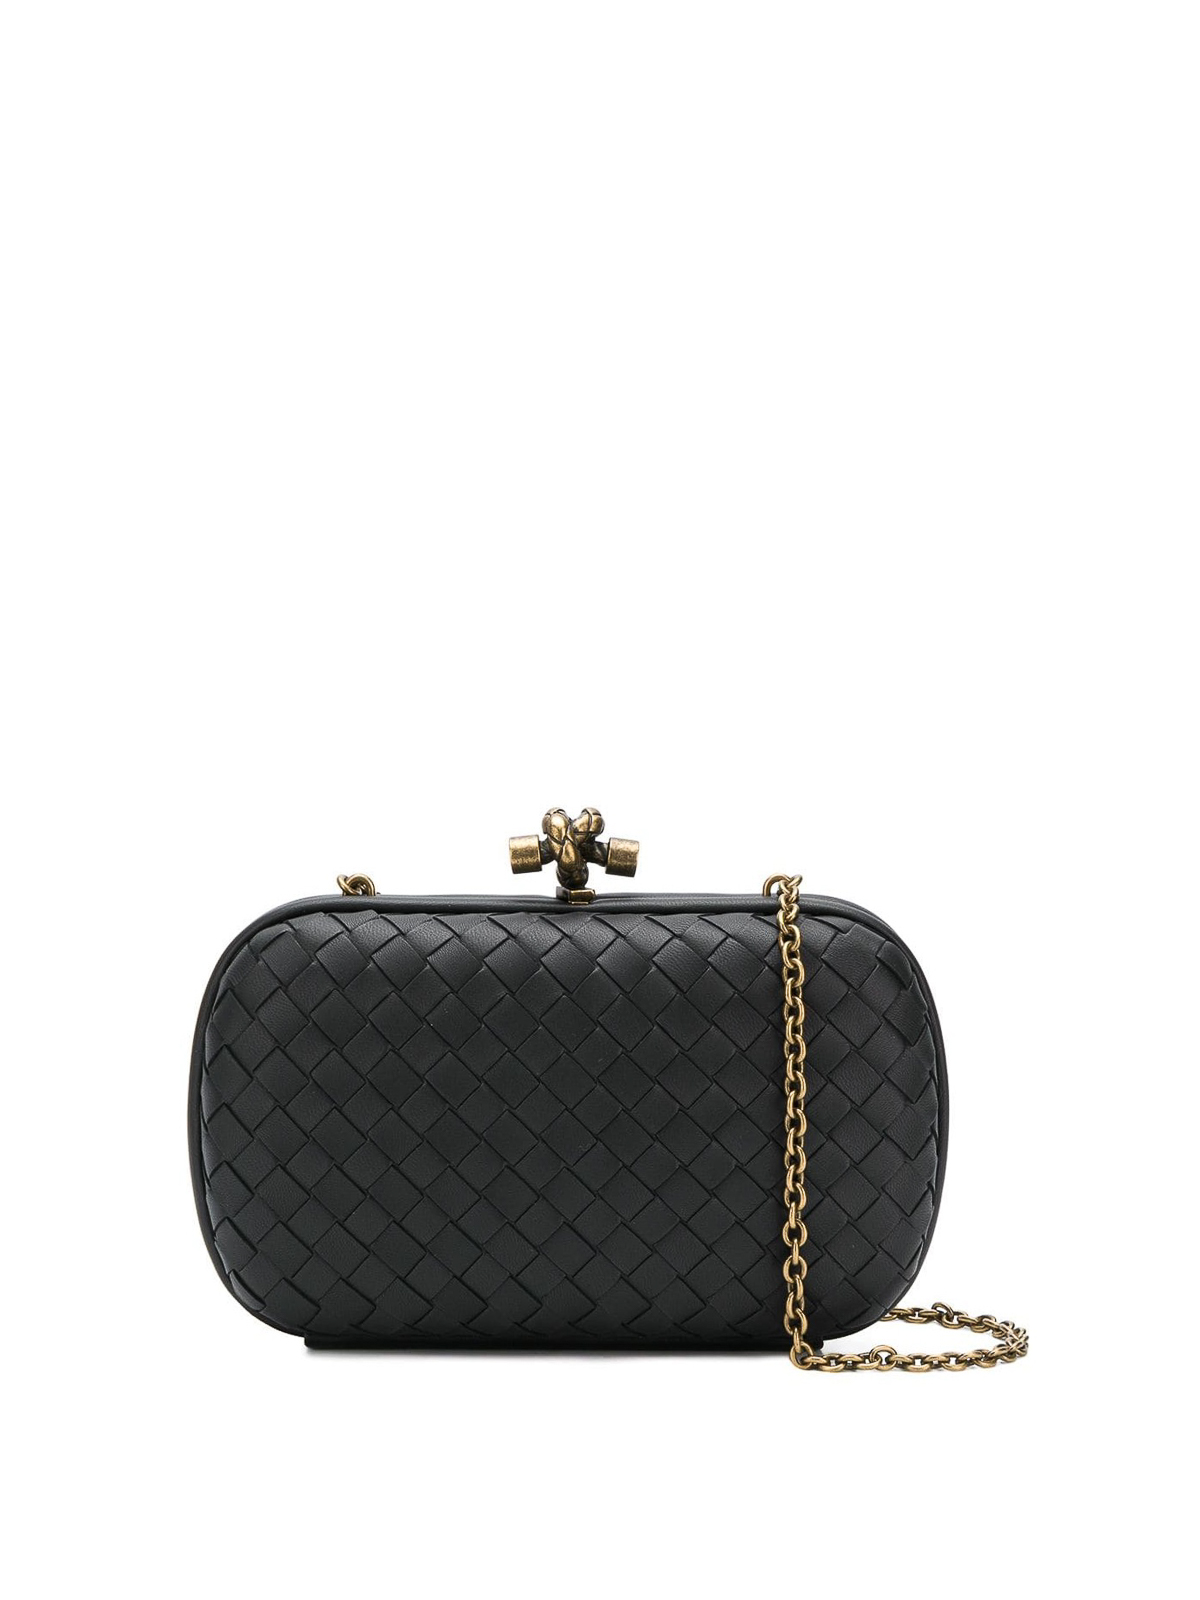 221cb2fdb012 Bottega Veneta - Chain Knot black woven lambskin clutch - clutches ...